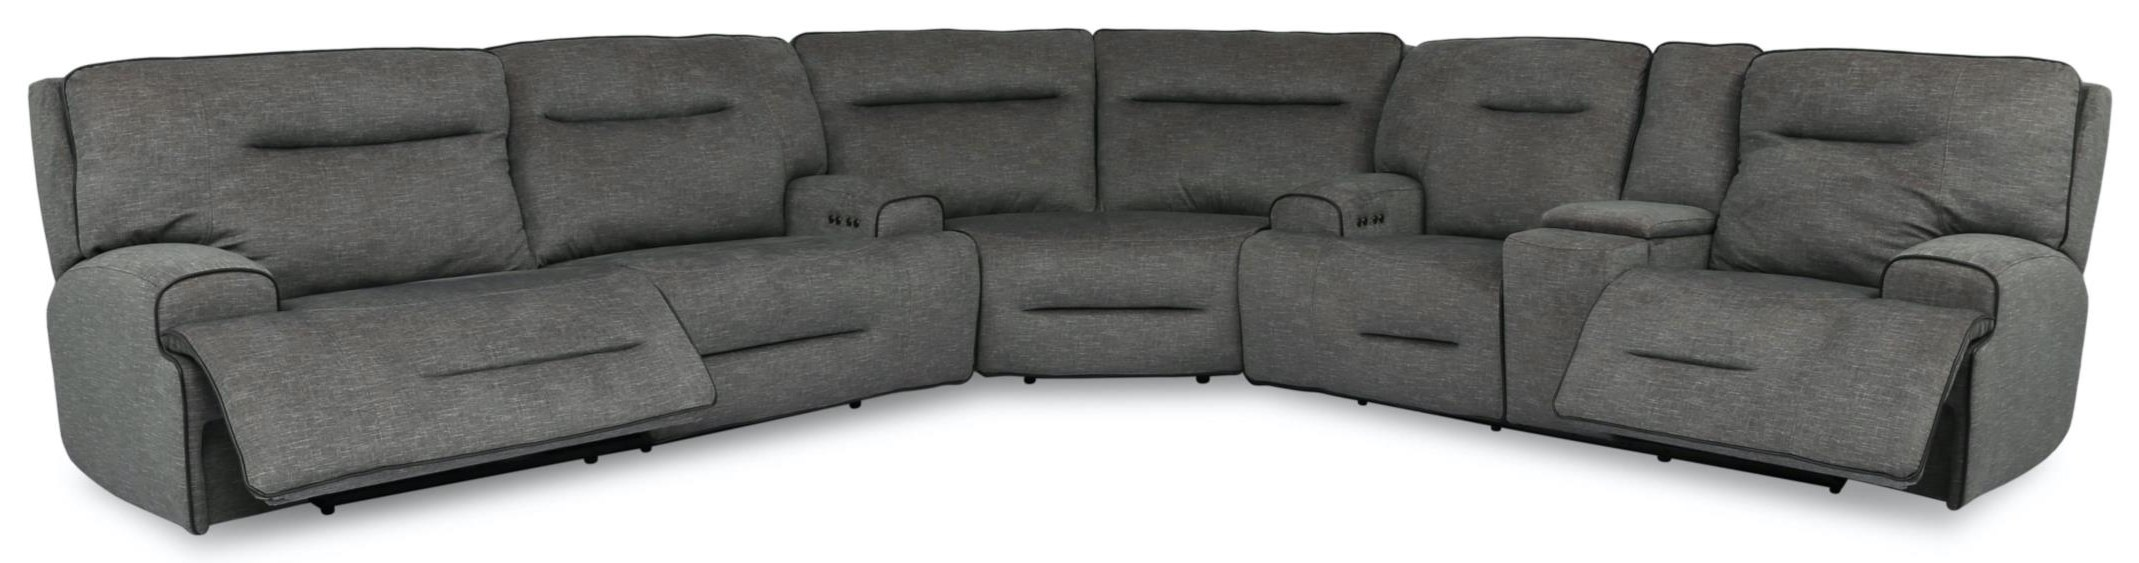 90016 Power Reclining Sofa Sectional with Power He by Cheers at Beck's Furniture